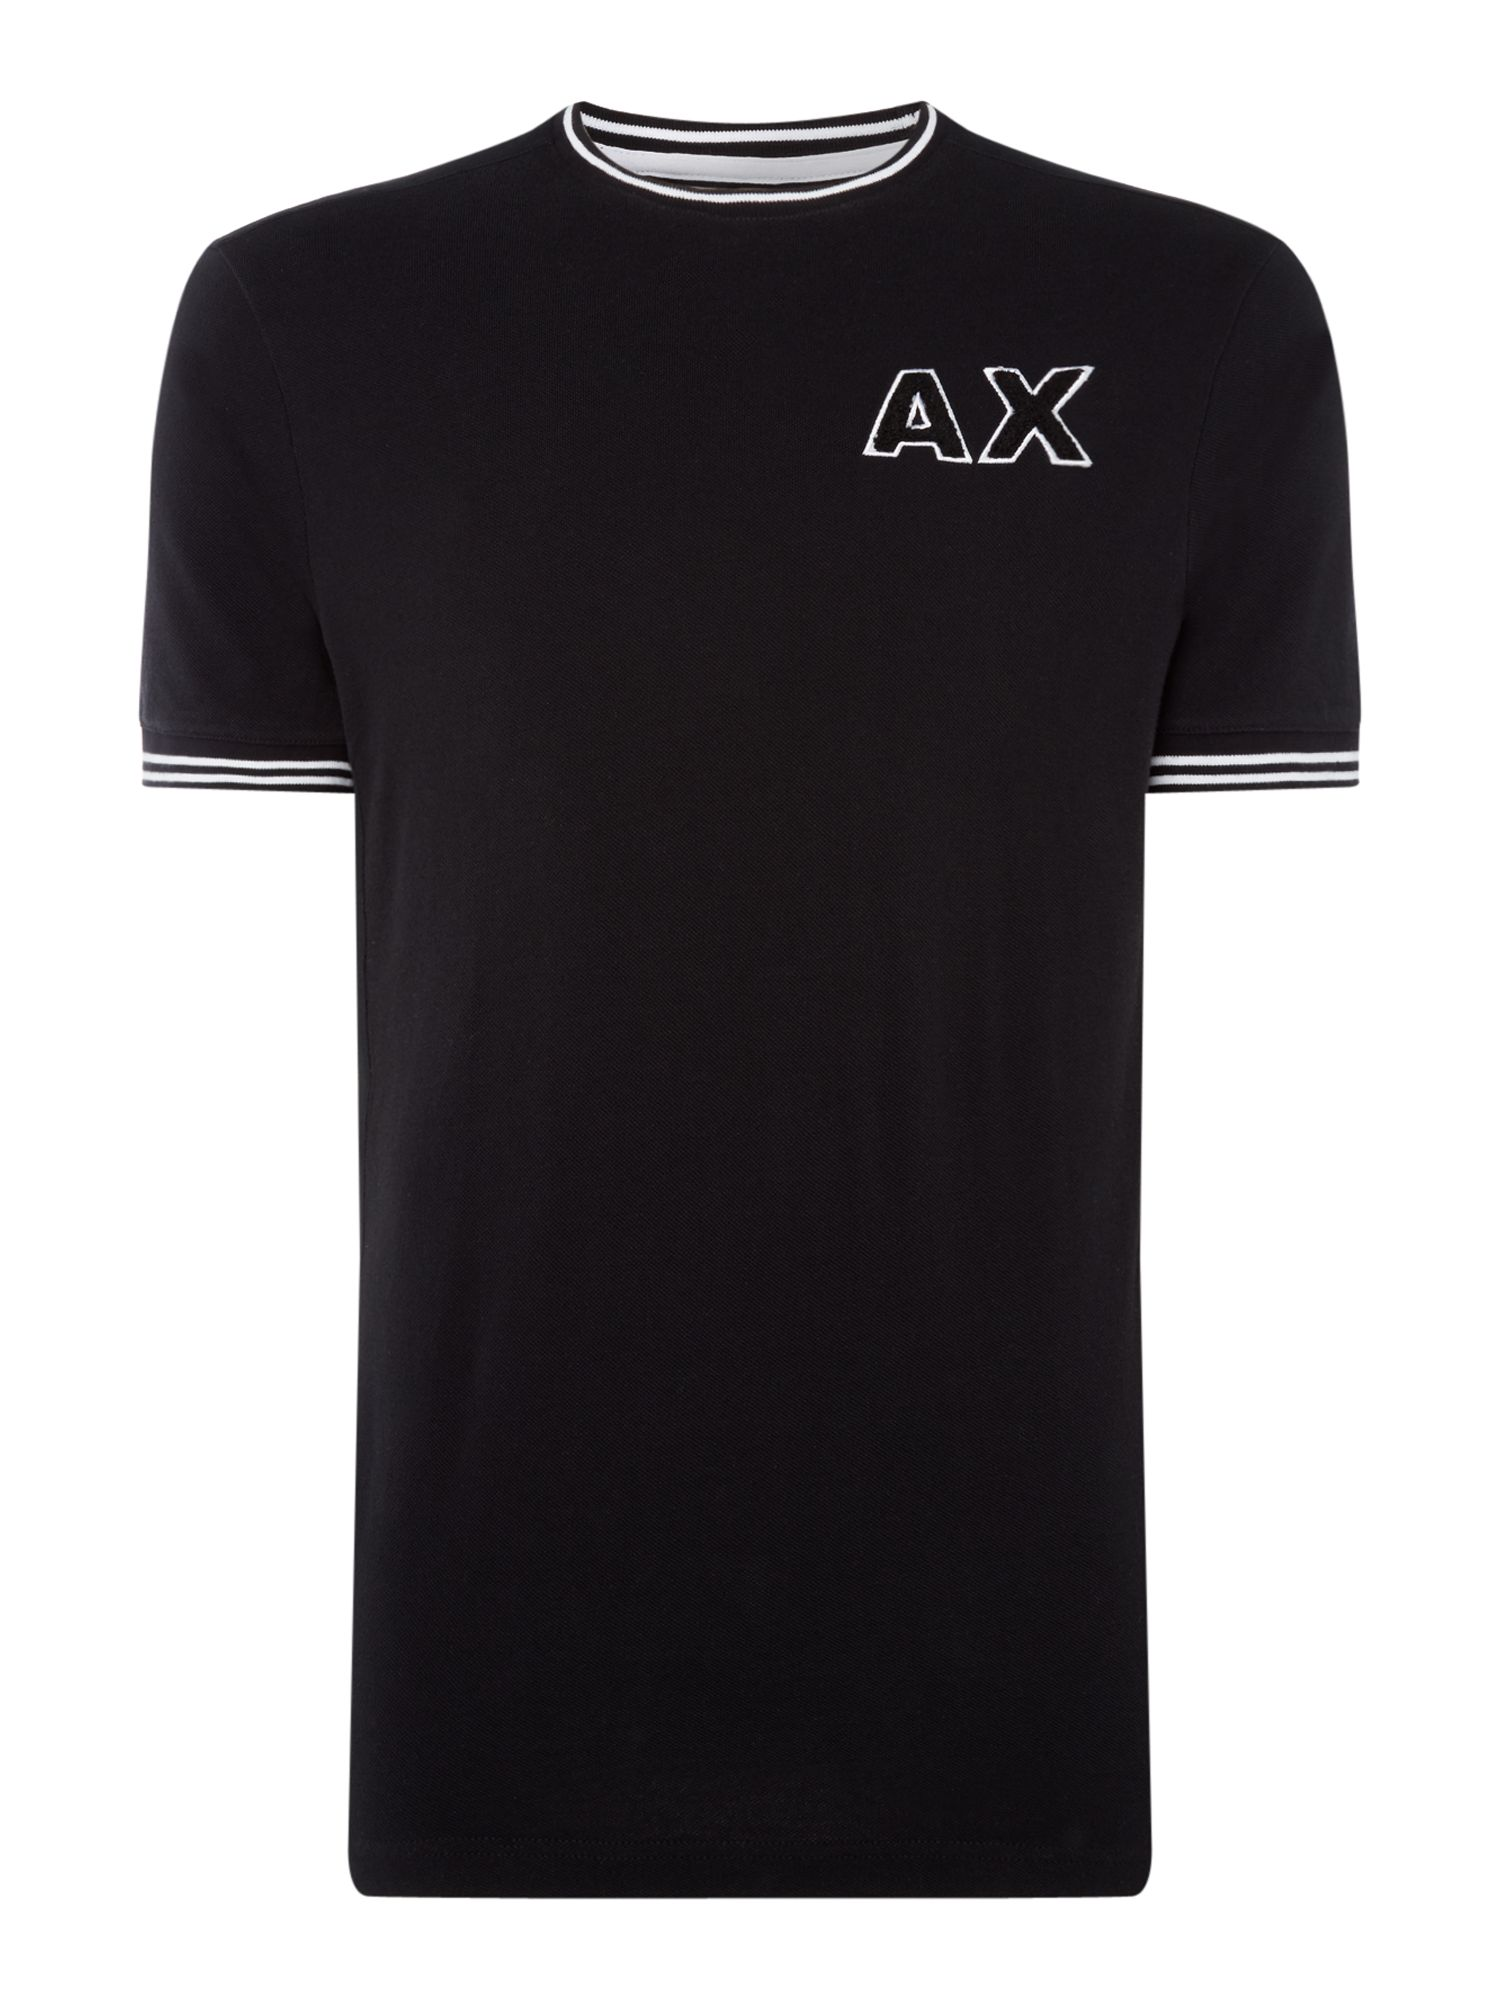 Men's Armani Exchange AX Textured Logo Tshirt, Black